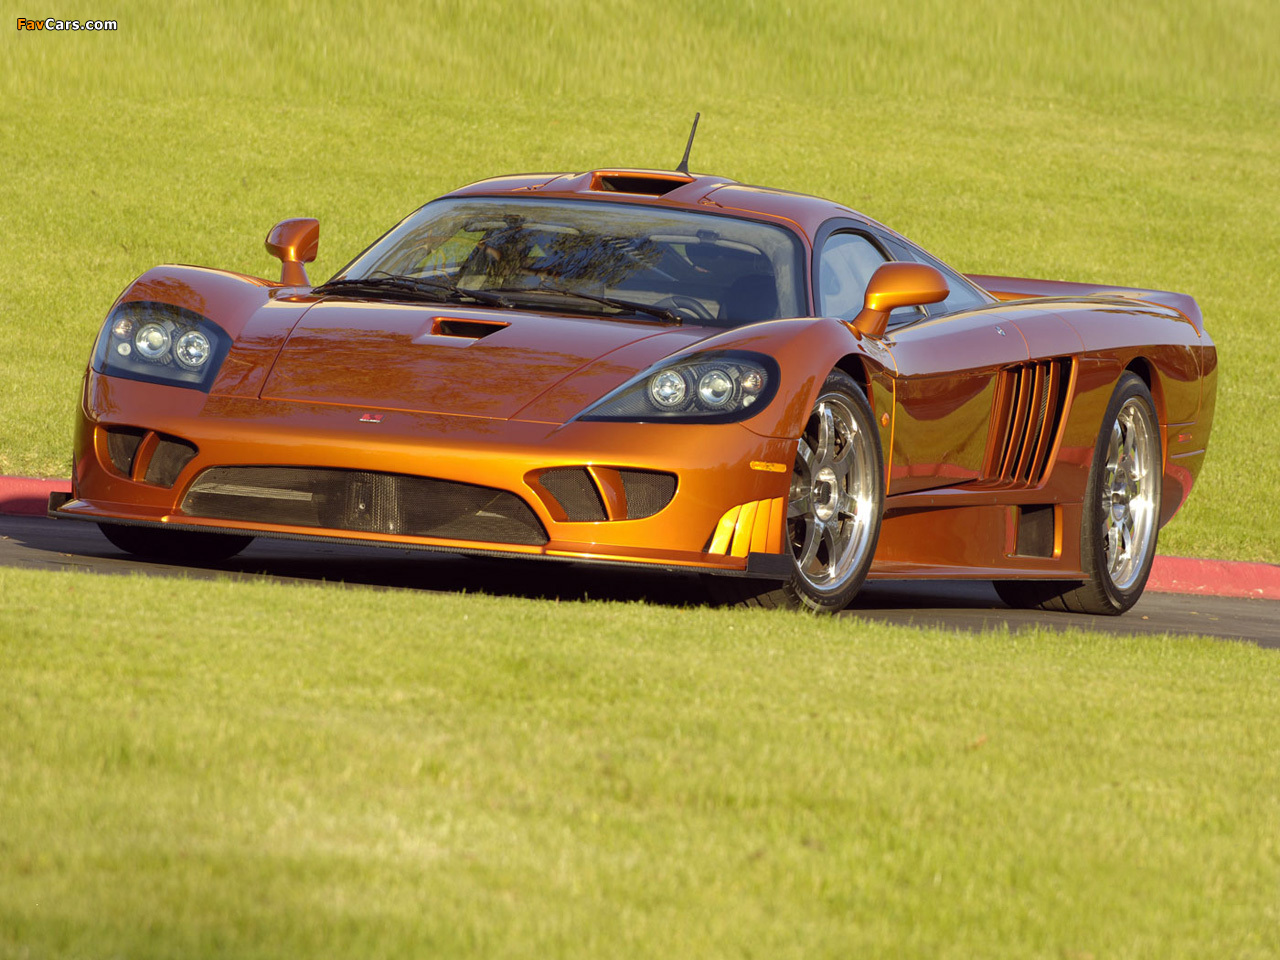 Saleen S7 Twin Turbo 2005 06 Wallpapers 1280x960